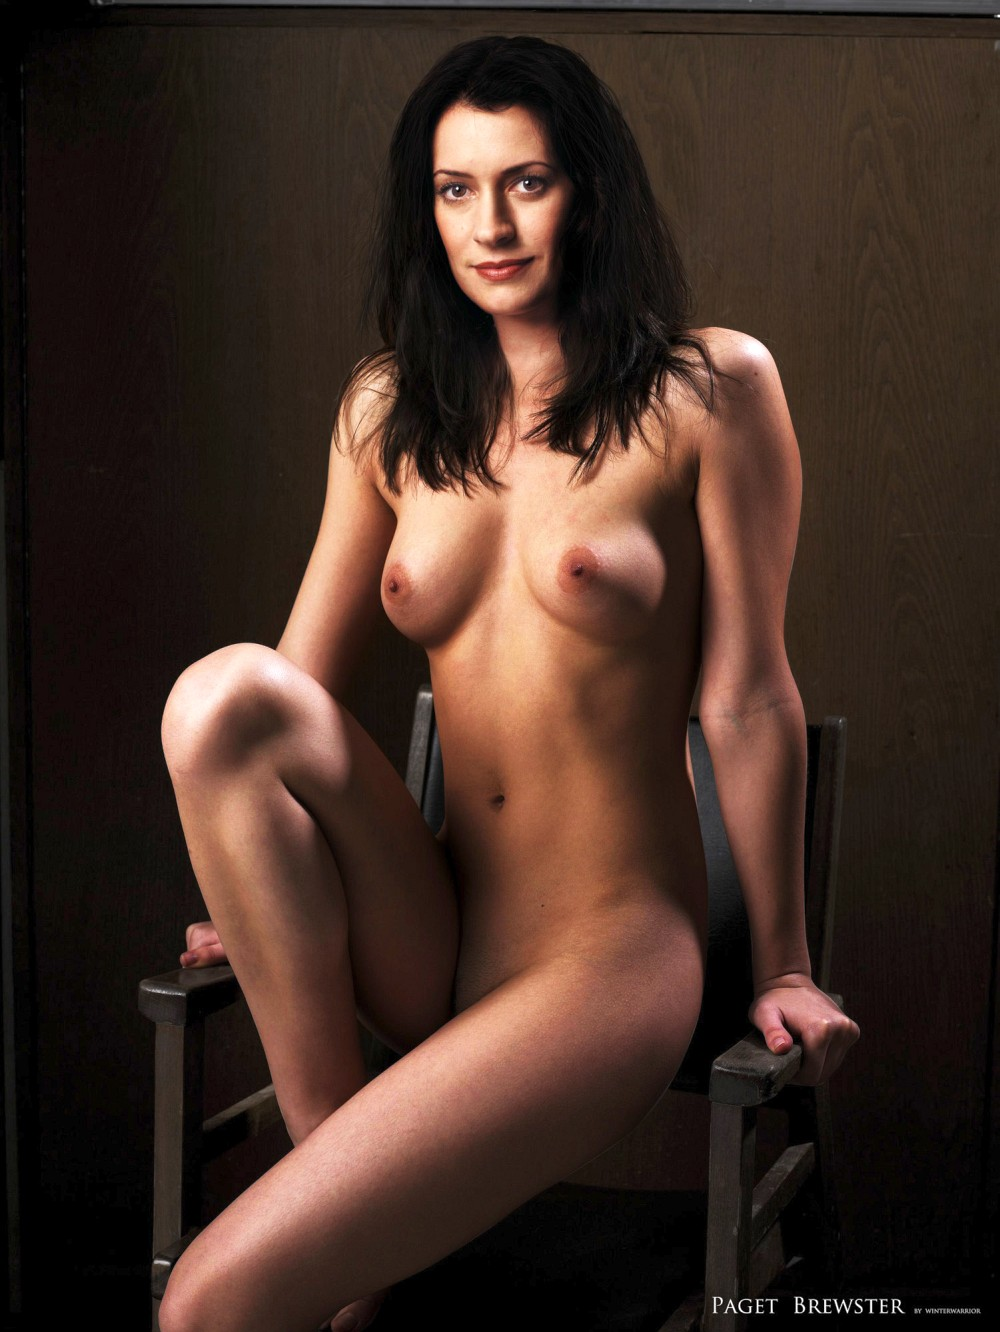 Paget Brewster Nude Fakes - 001